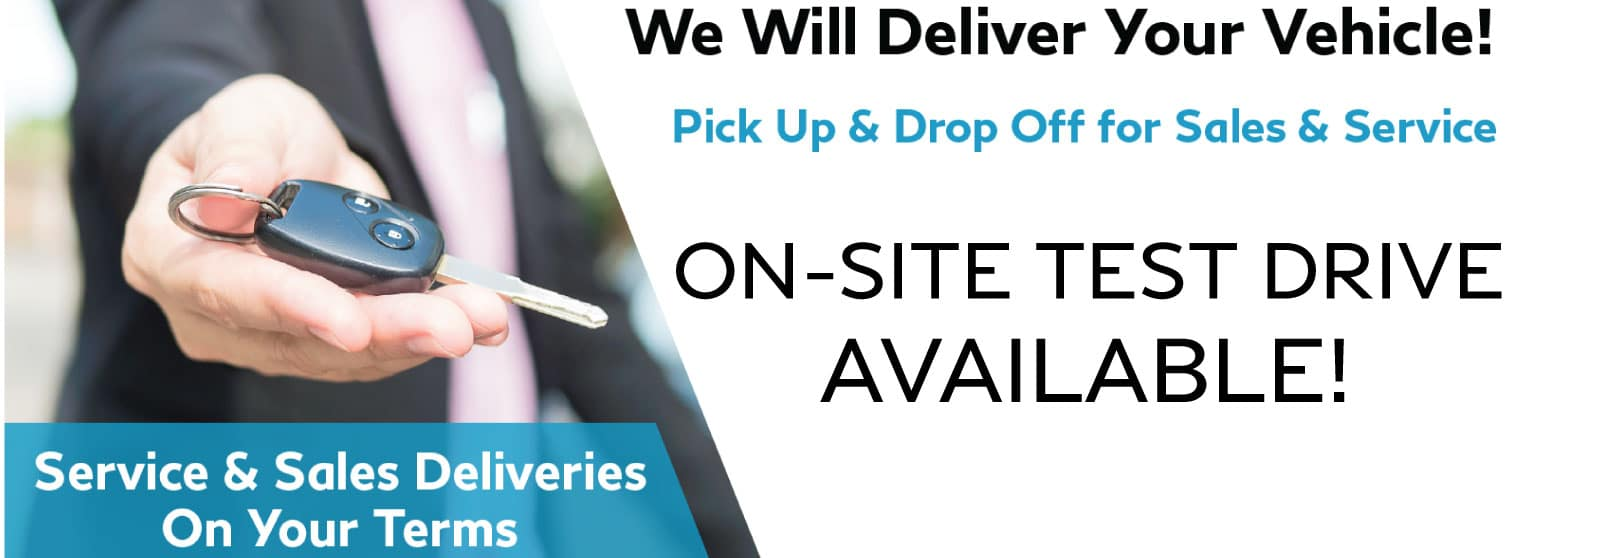 We Will Deliver Your Vehicle! Pick Up & Drop Off For Sales & Service. On-Site Test Drive Available.